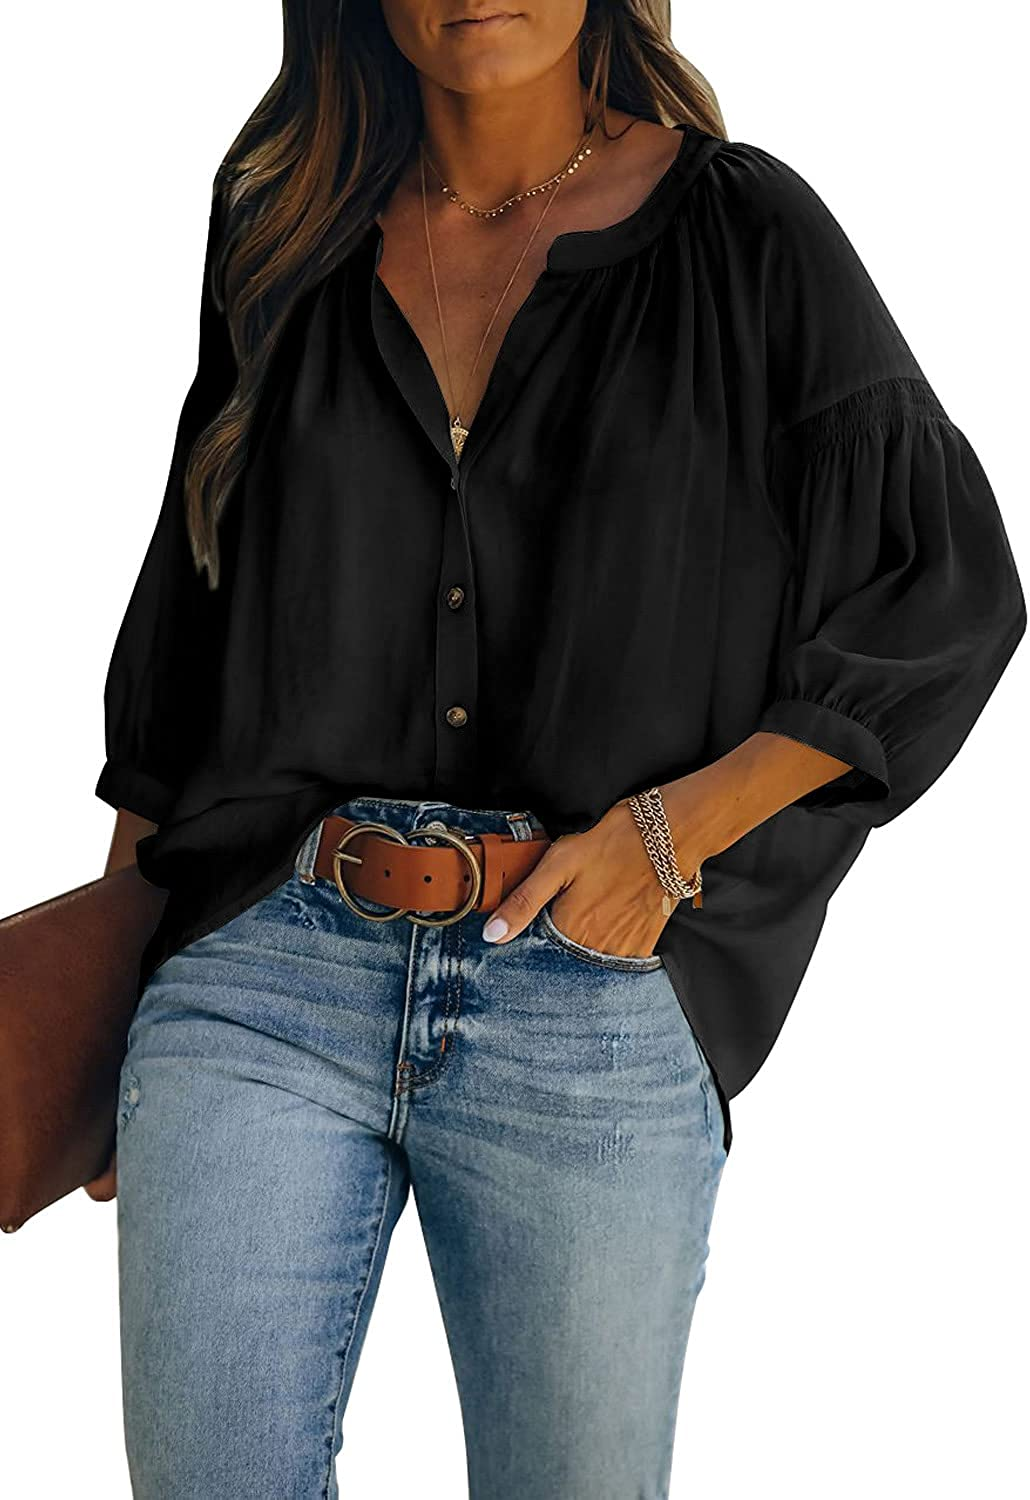 LOLONG Womens 3/4 Sleeve Button Down Shirts Casual Loose Fit Woven Blouse Tops